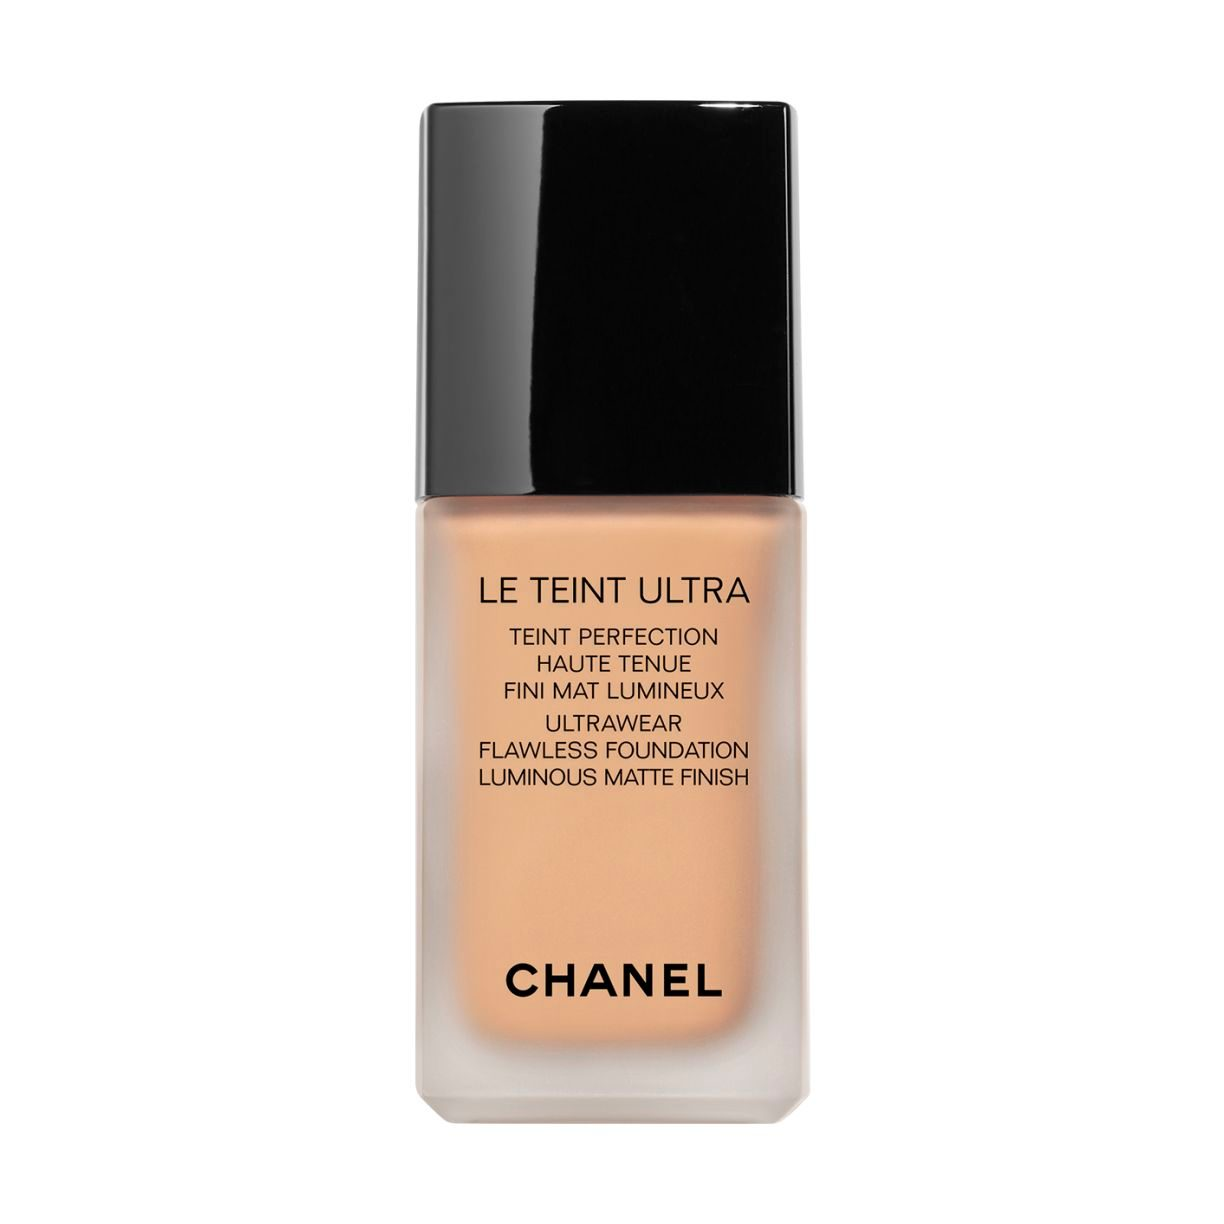 LE TEINT ULTRA ULTRAWEAR FLAWLESS FOUNDATION LUMINOUS MATTE FINISH.